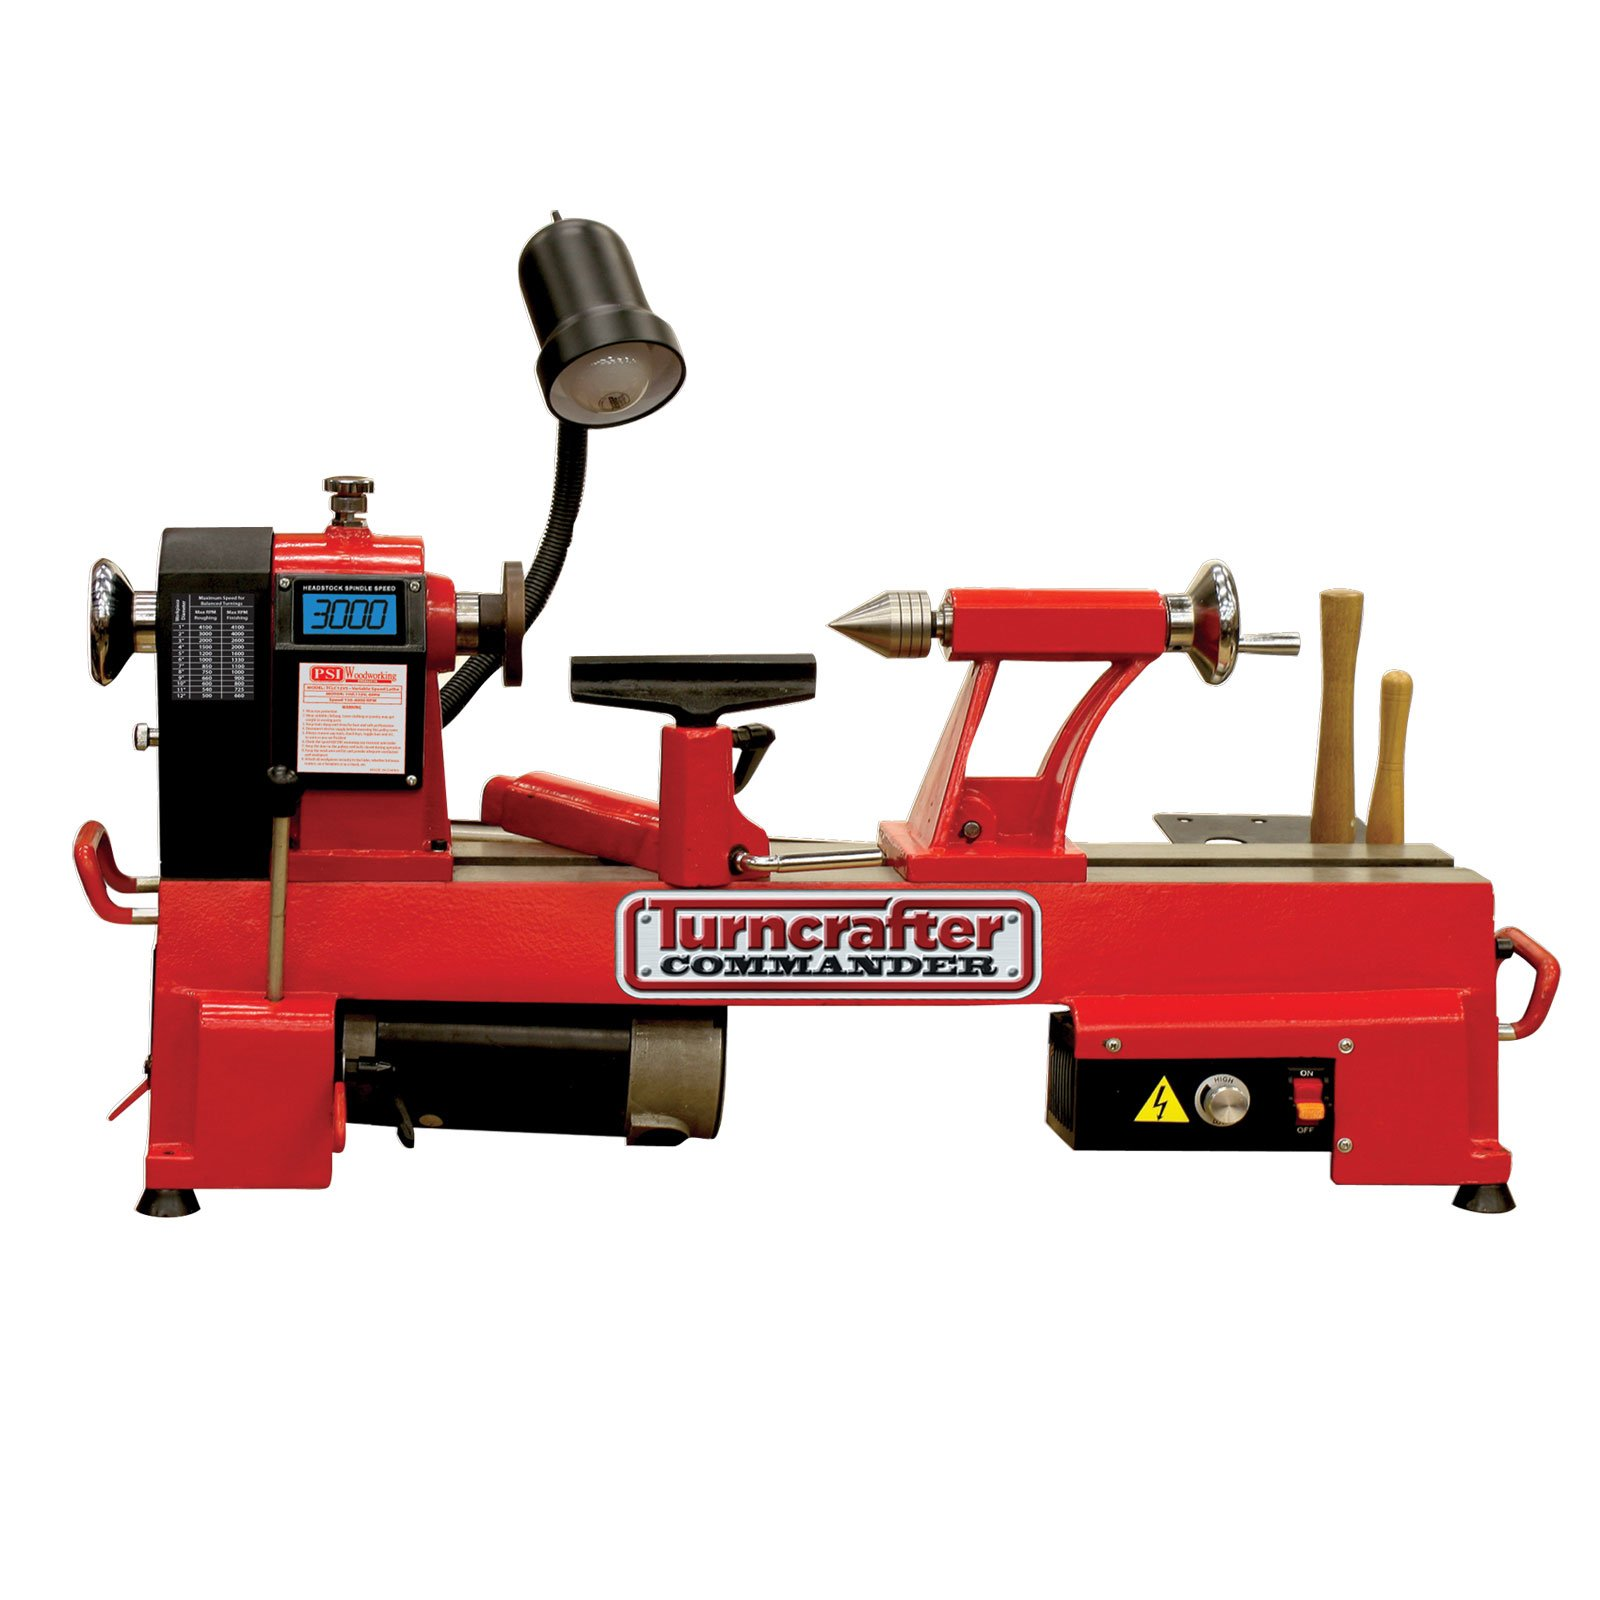 PSI Woodworking KWL-1018VS Turncrafter Commander 10'' Variable Speed Midi Lathe by PSI Woodworking